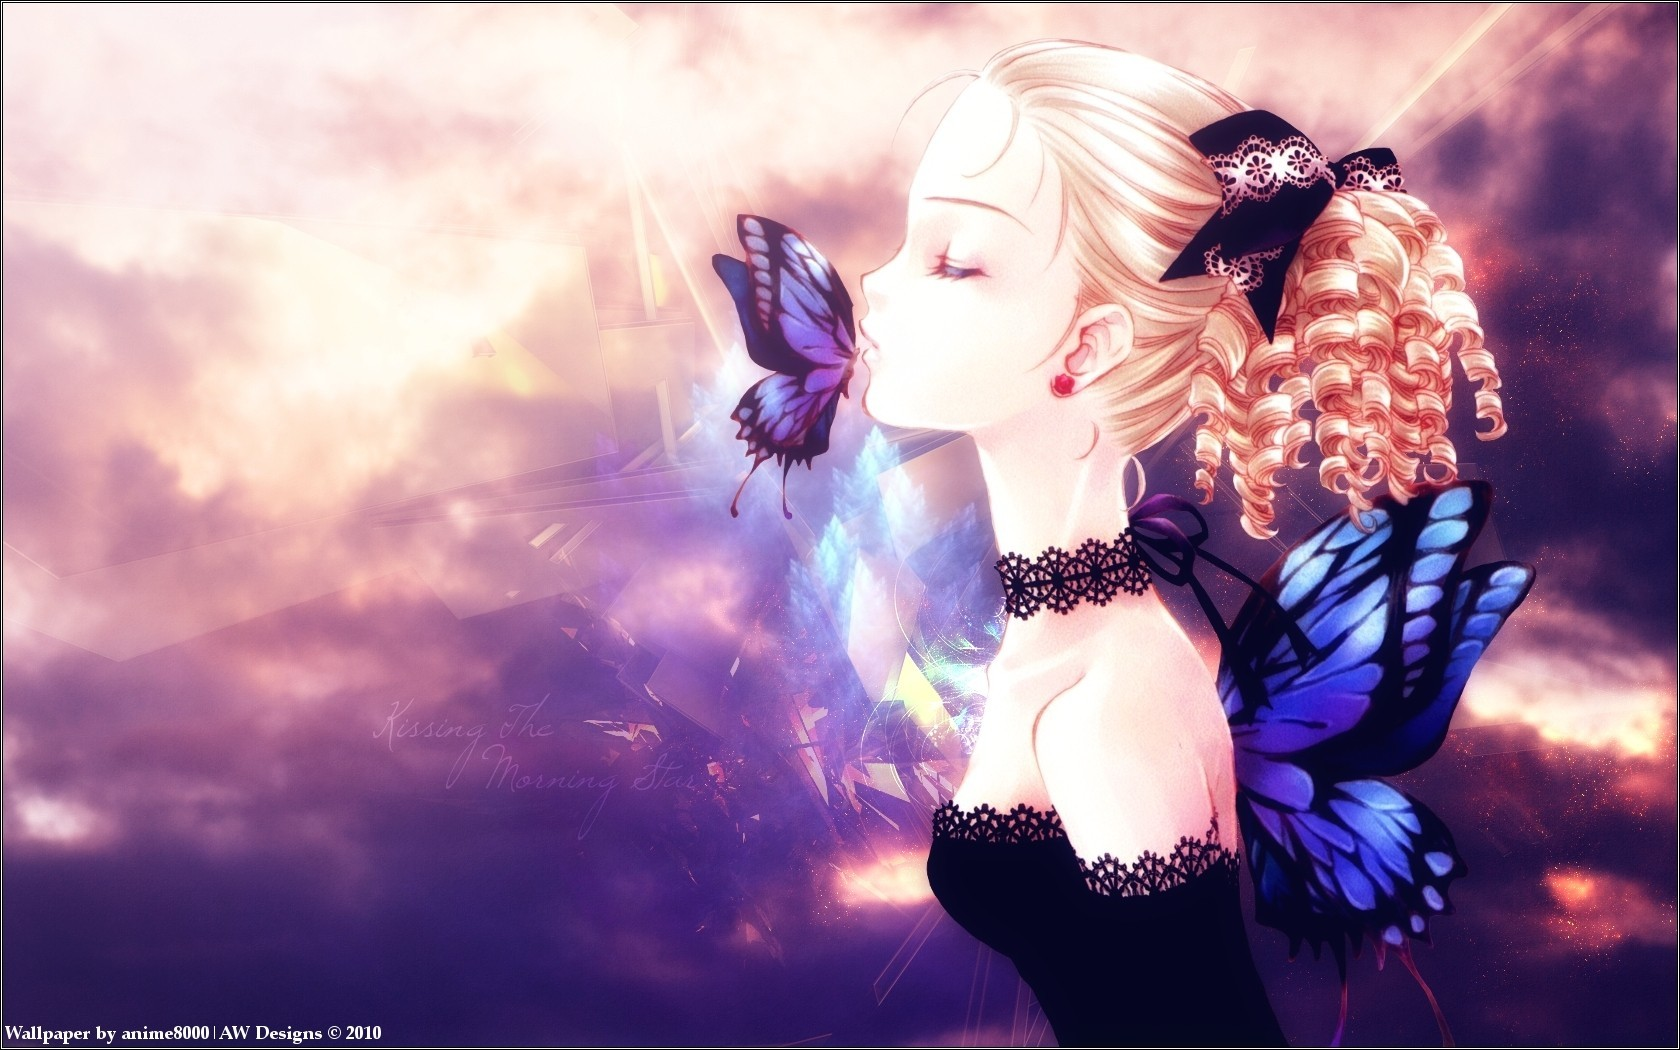 blondes wings dress kissing HD Wallpaper